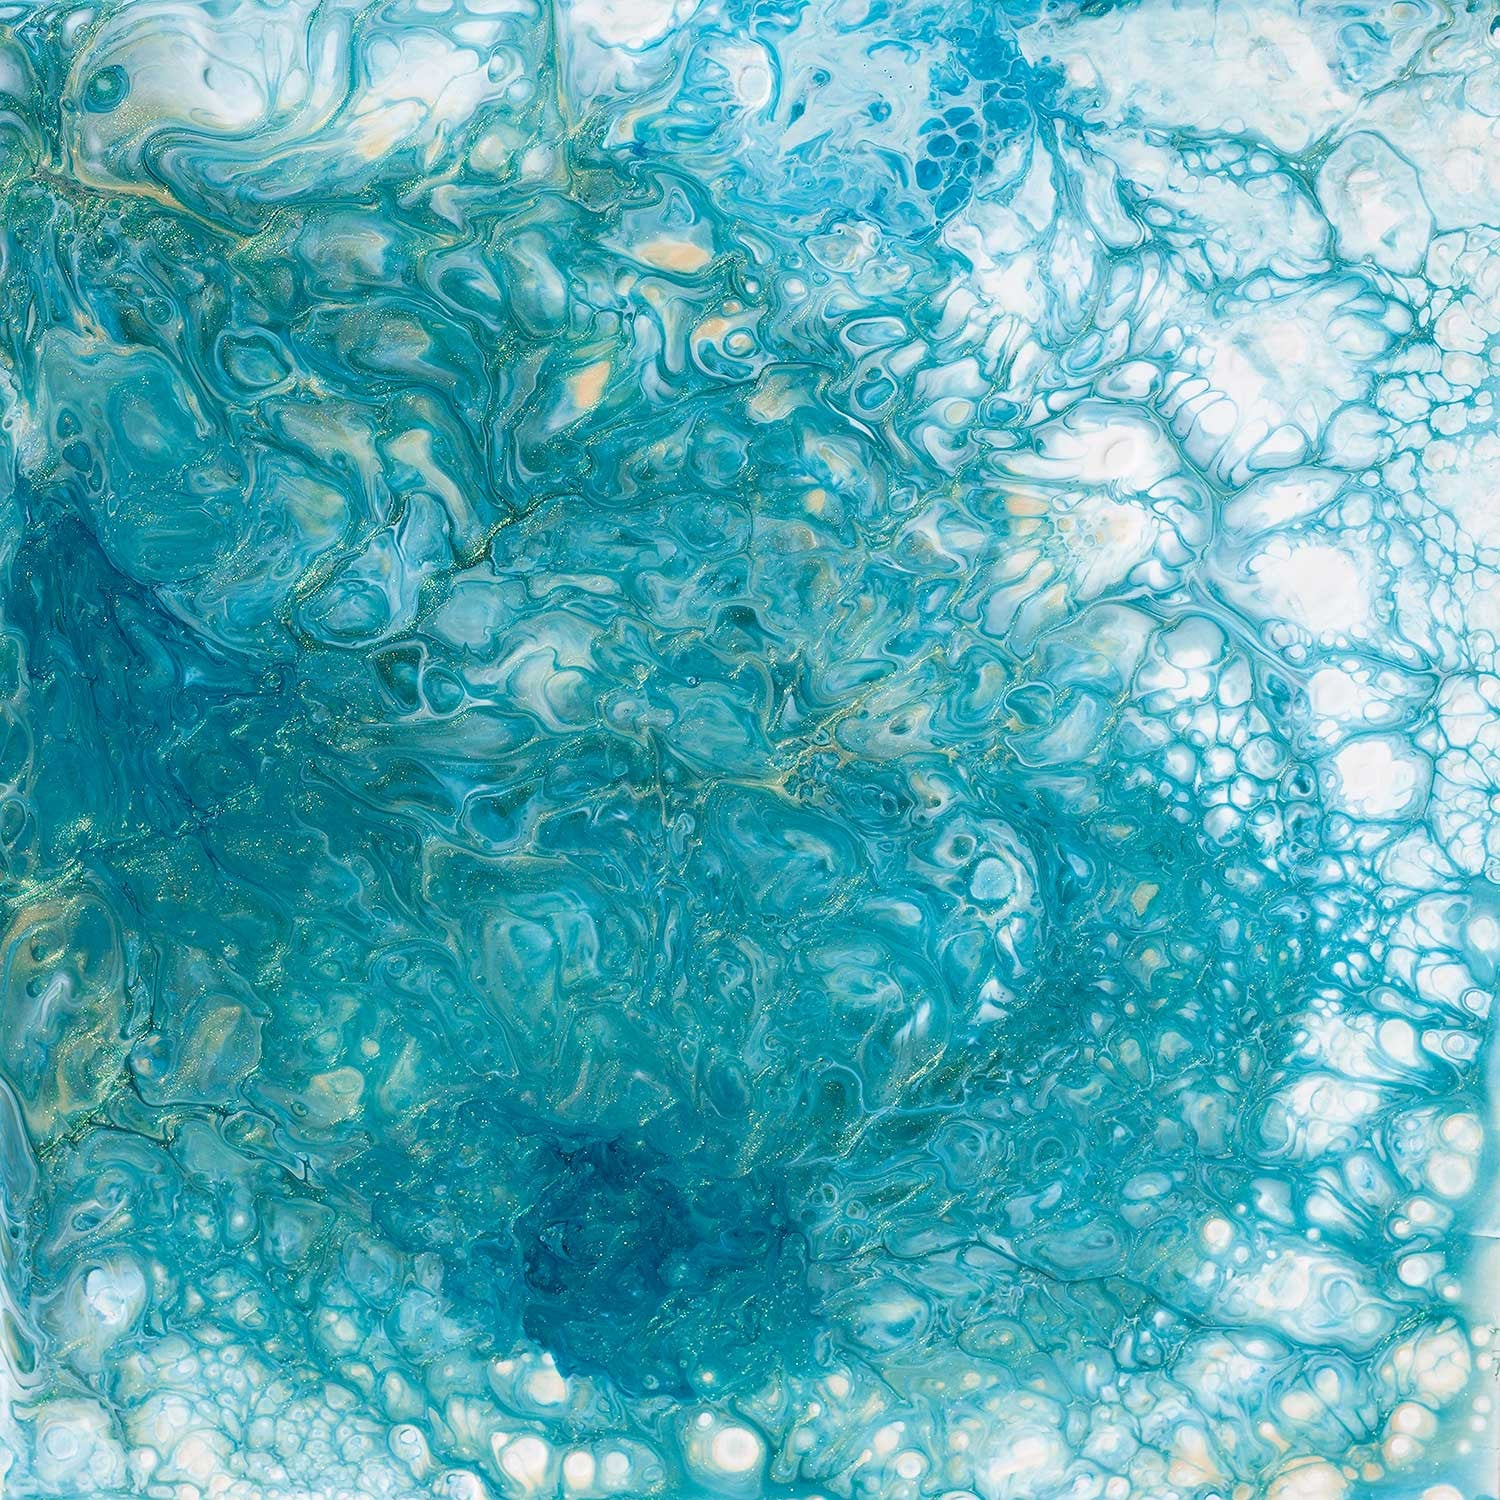 Thousand Aqua Pools - Original Painting